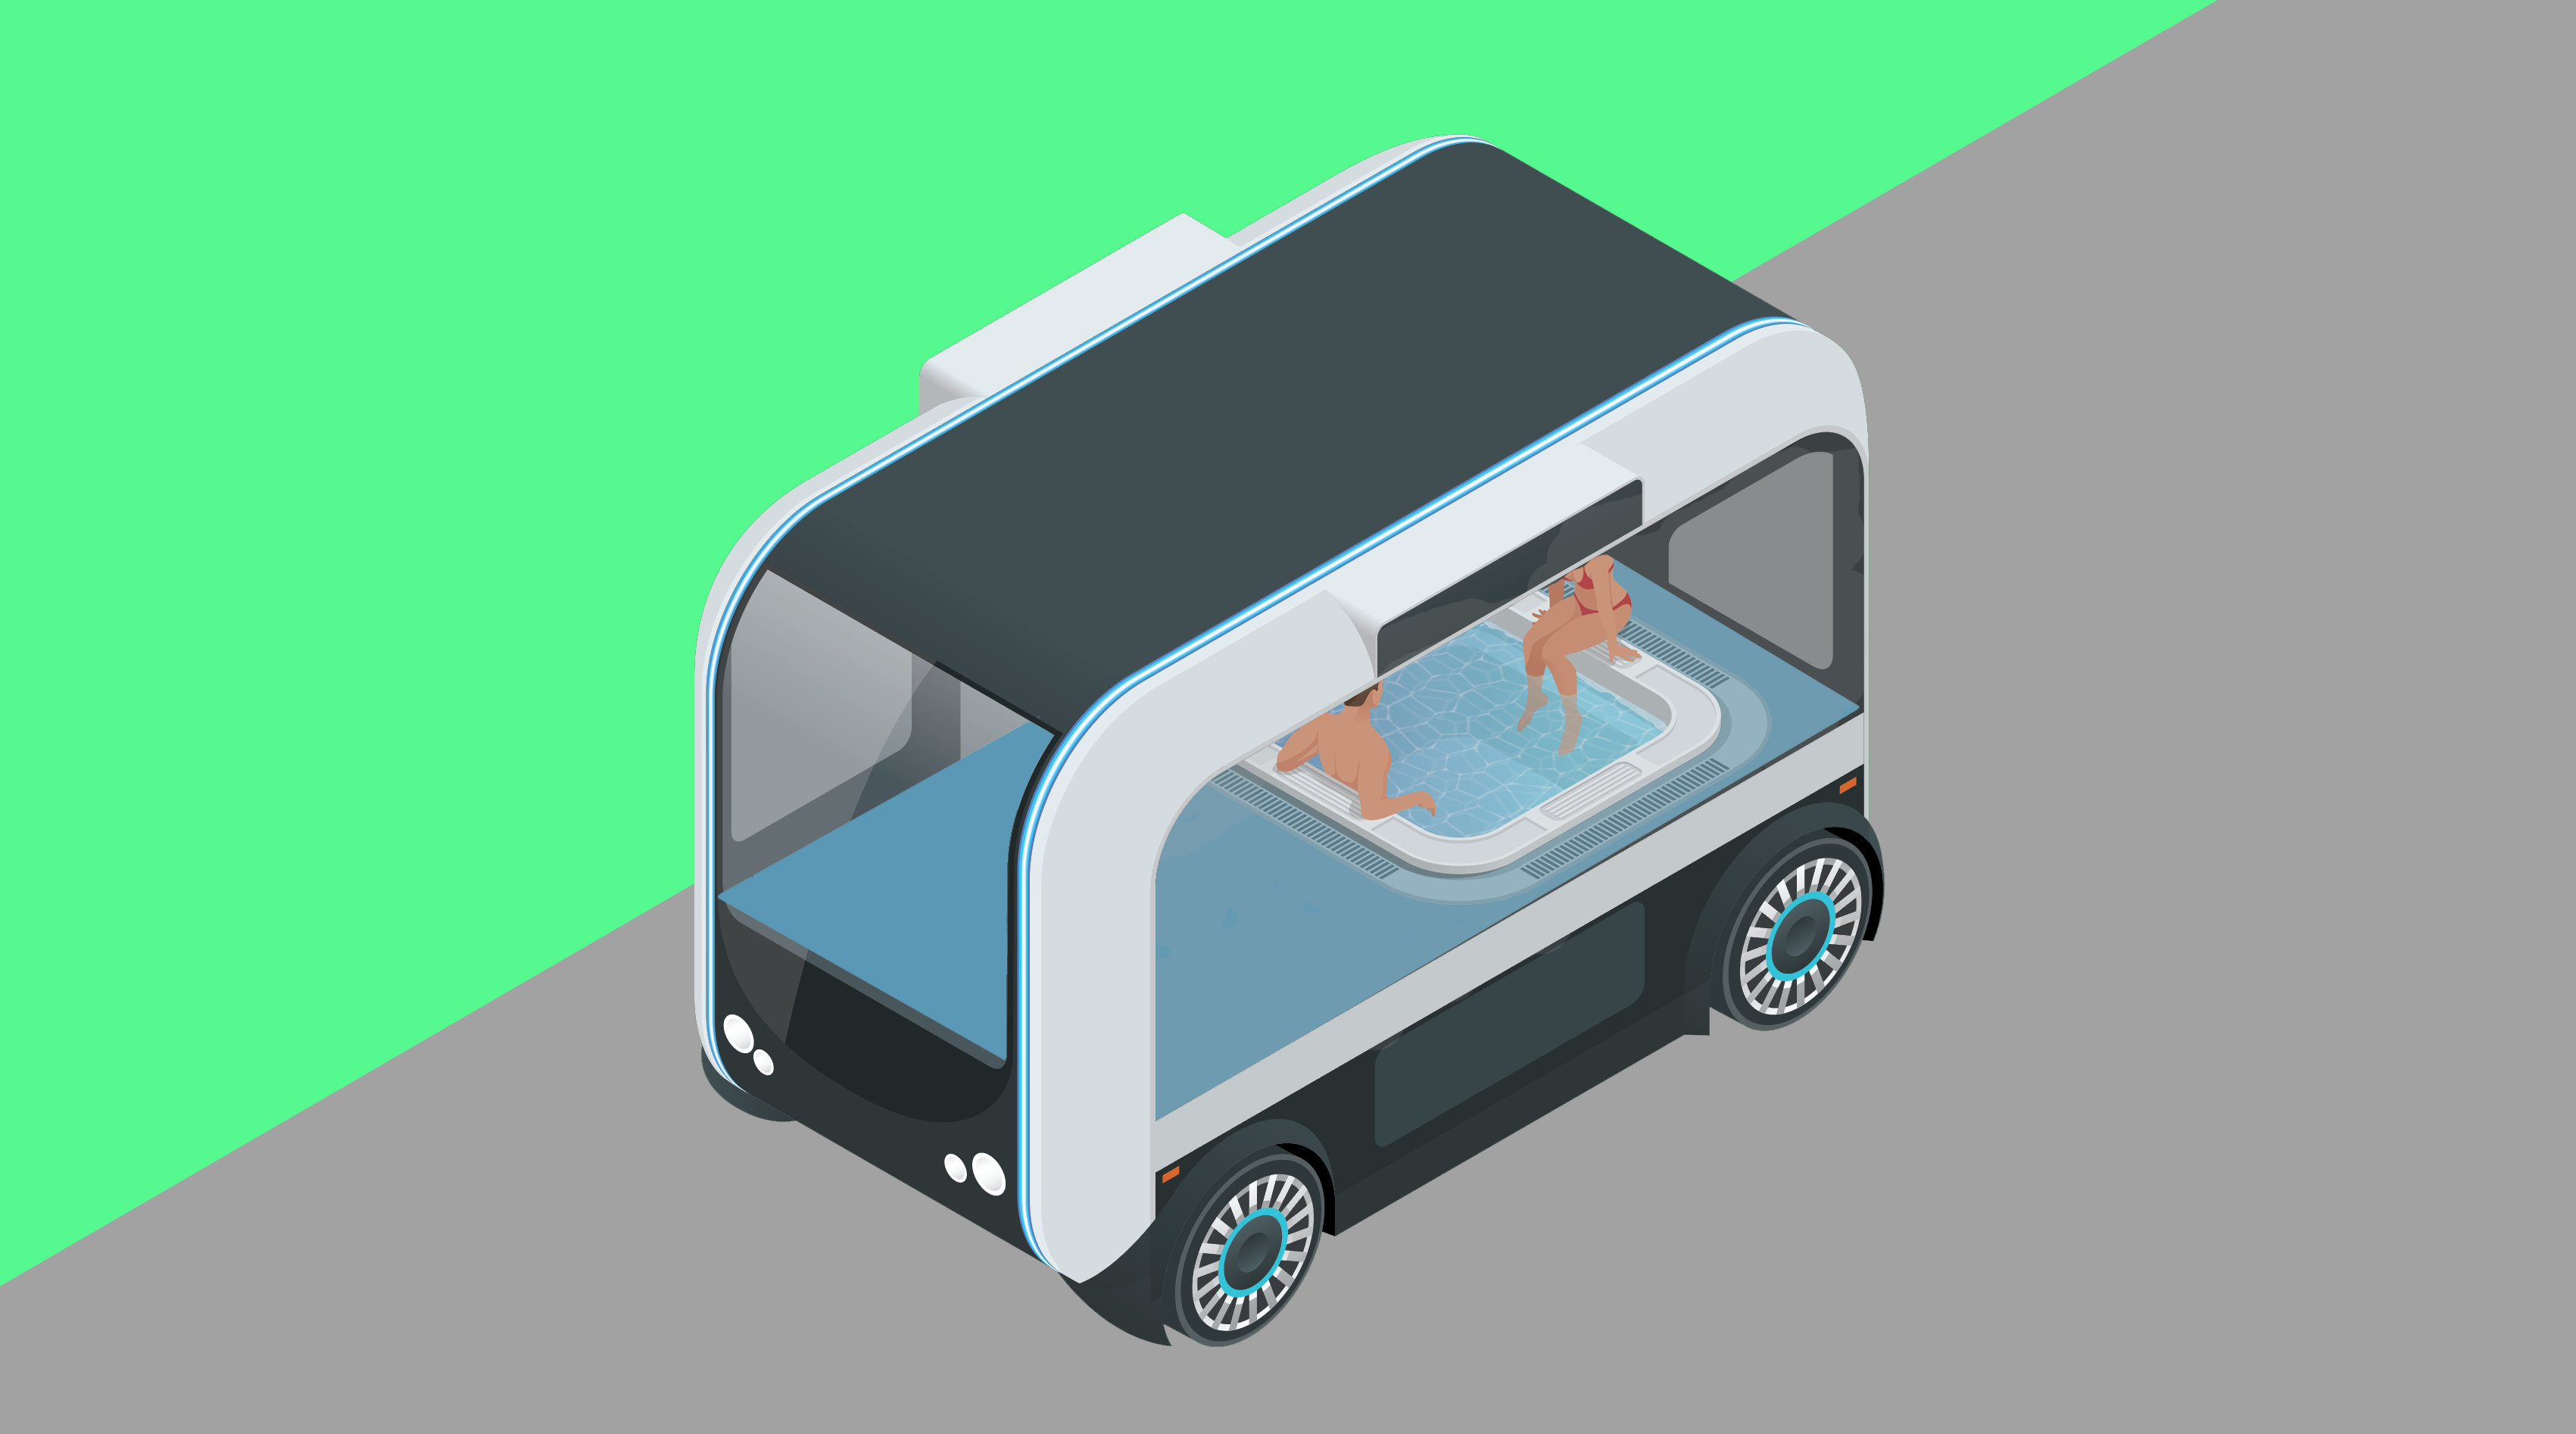 Autonomous vehicle space used for hot tubbing